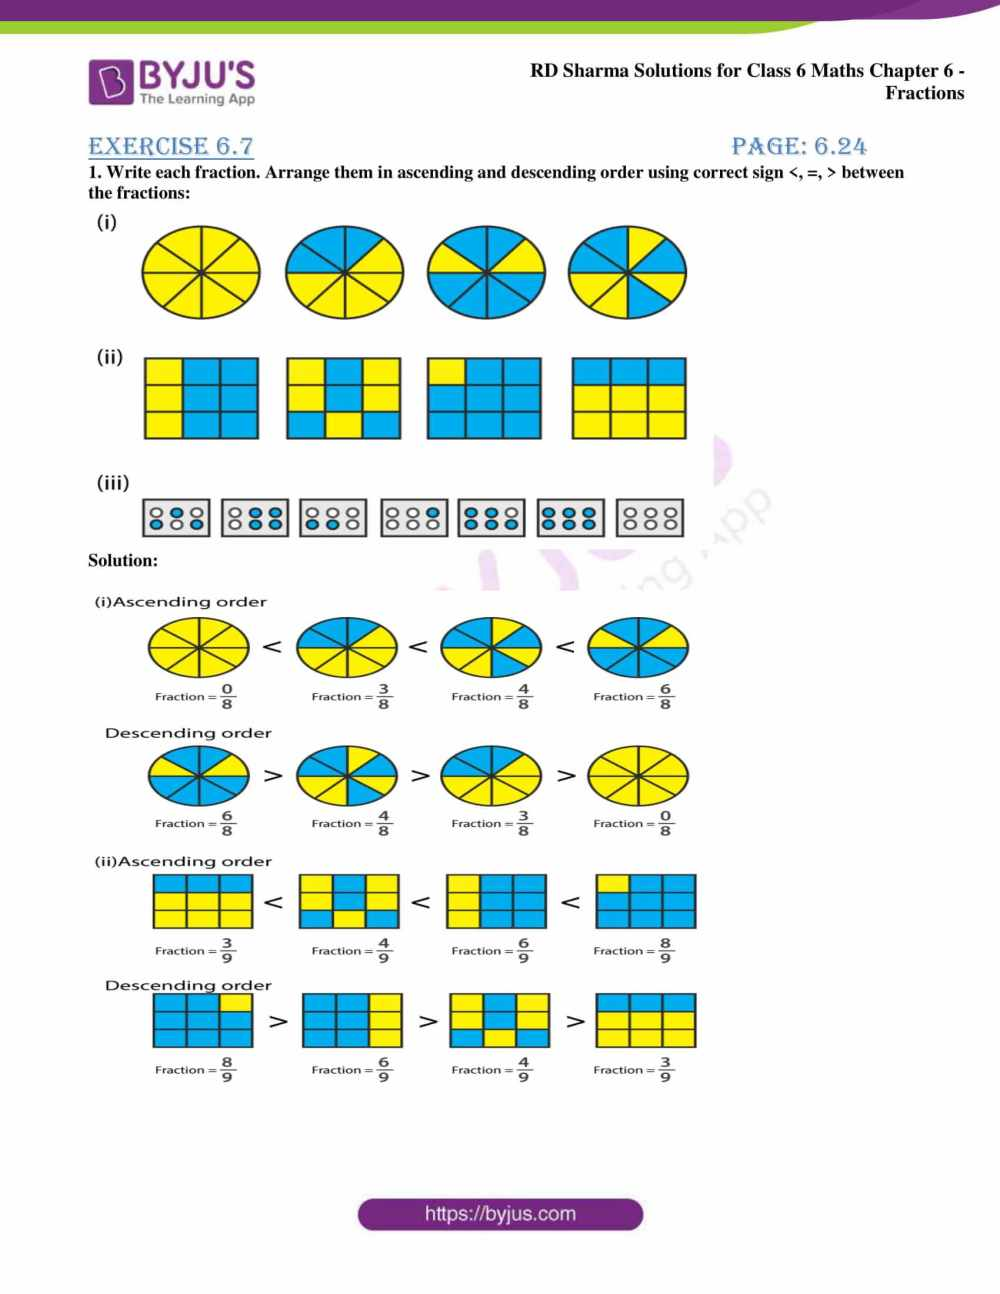 medium resolution of RD Sharma Solutions for Class 6 Chapter 6 Fractions Exercise 6.7 free PDF  access